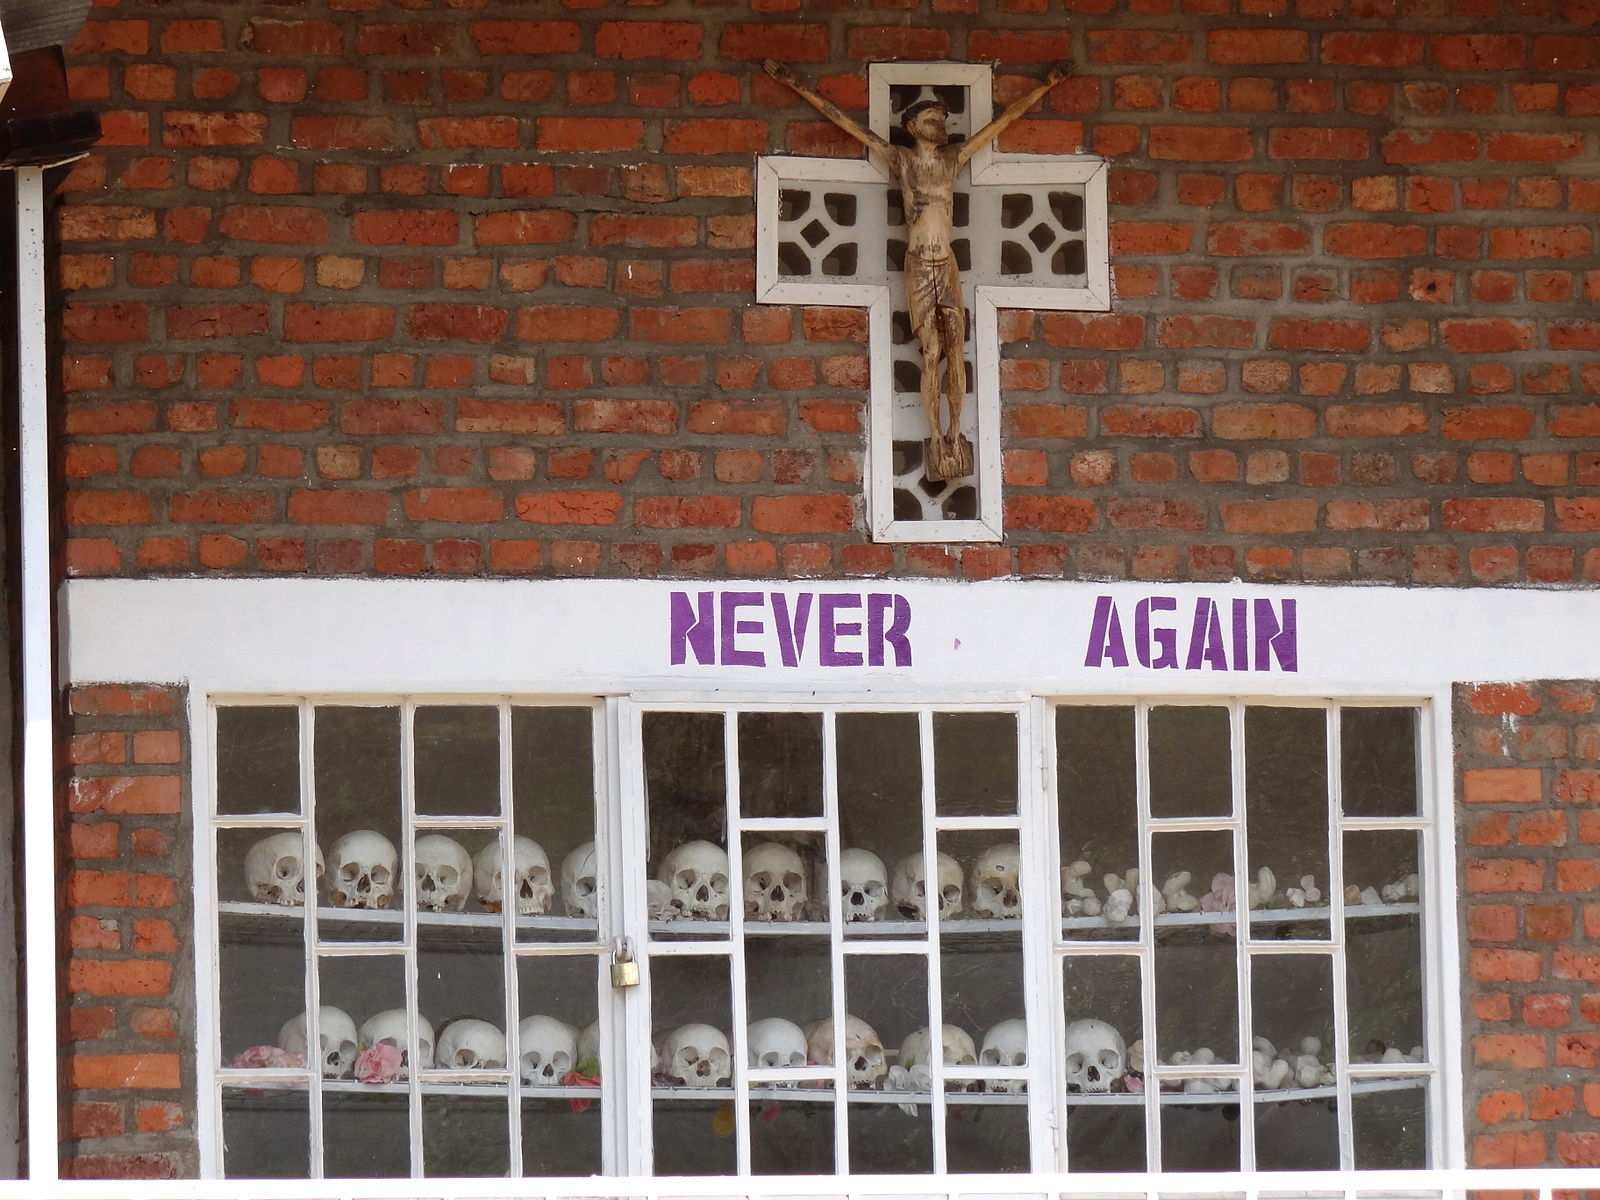 Never_Again_-_With_Display_of_Skulls_of_Victims_-_Courtyard_of_Genocide_Memorial_Church_-_Karongi-Kibuye_-_Western_Rwanda_-_01.jpg